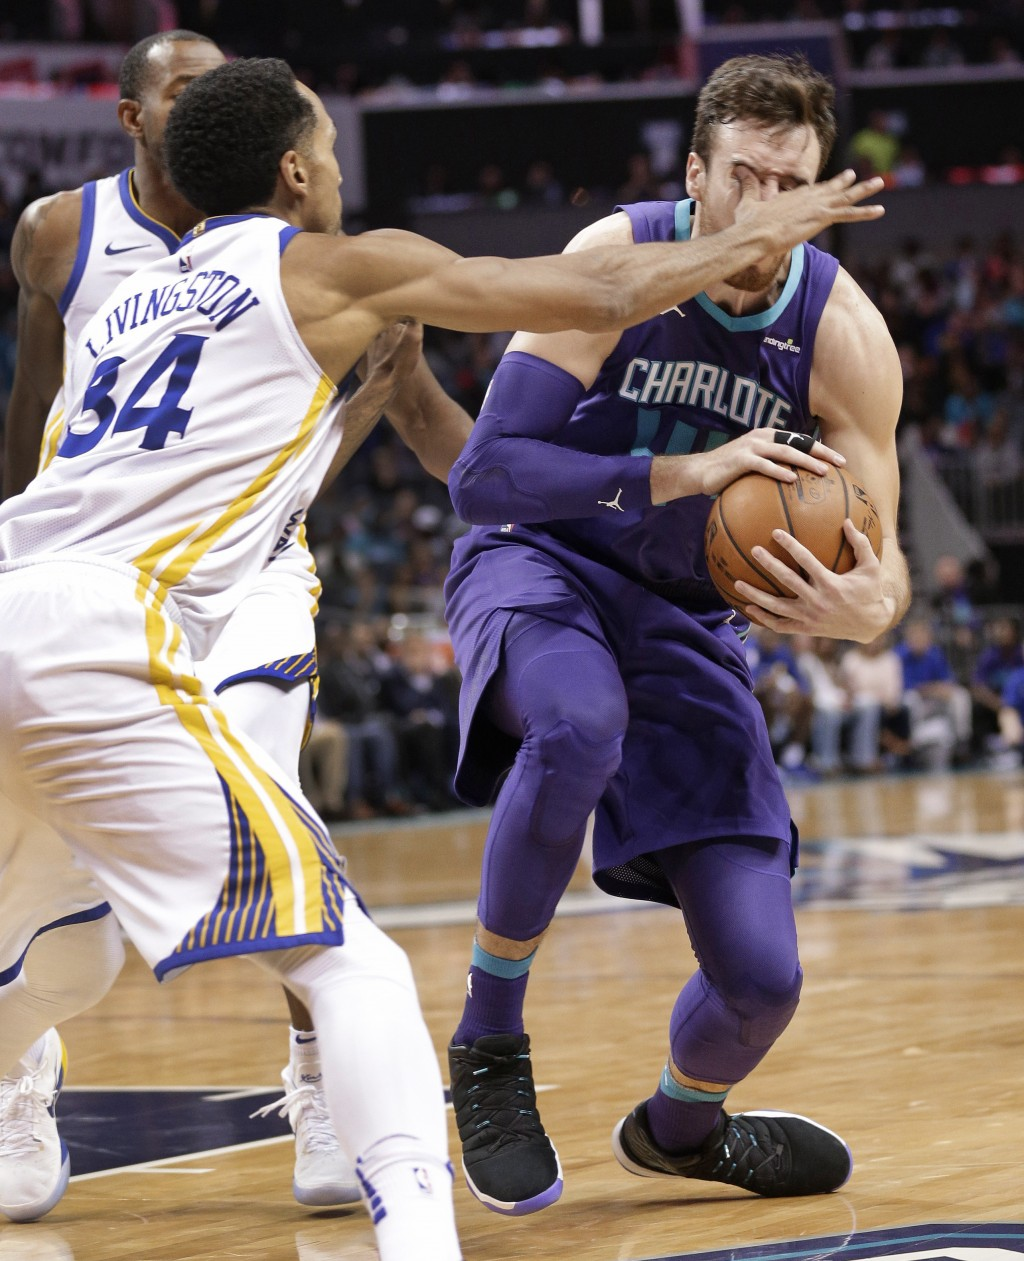 Charlotte Hornets' Frank Kaminsky, right, is poked in the eye by Golden State Warriors' Shaun Livingston (34) during the first half of an NBA basketba